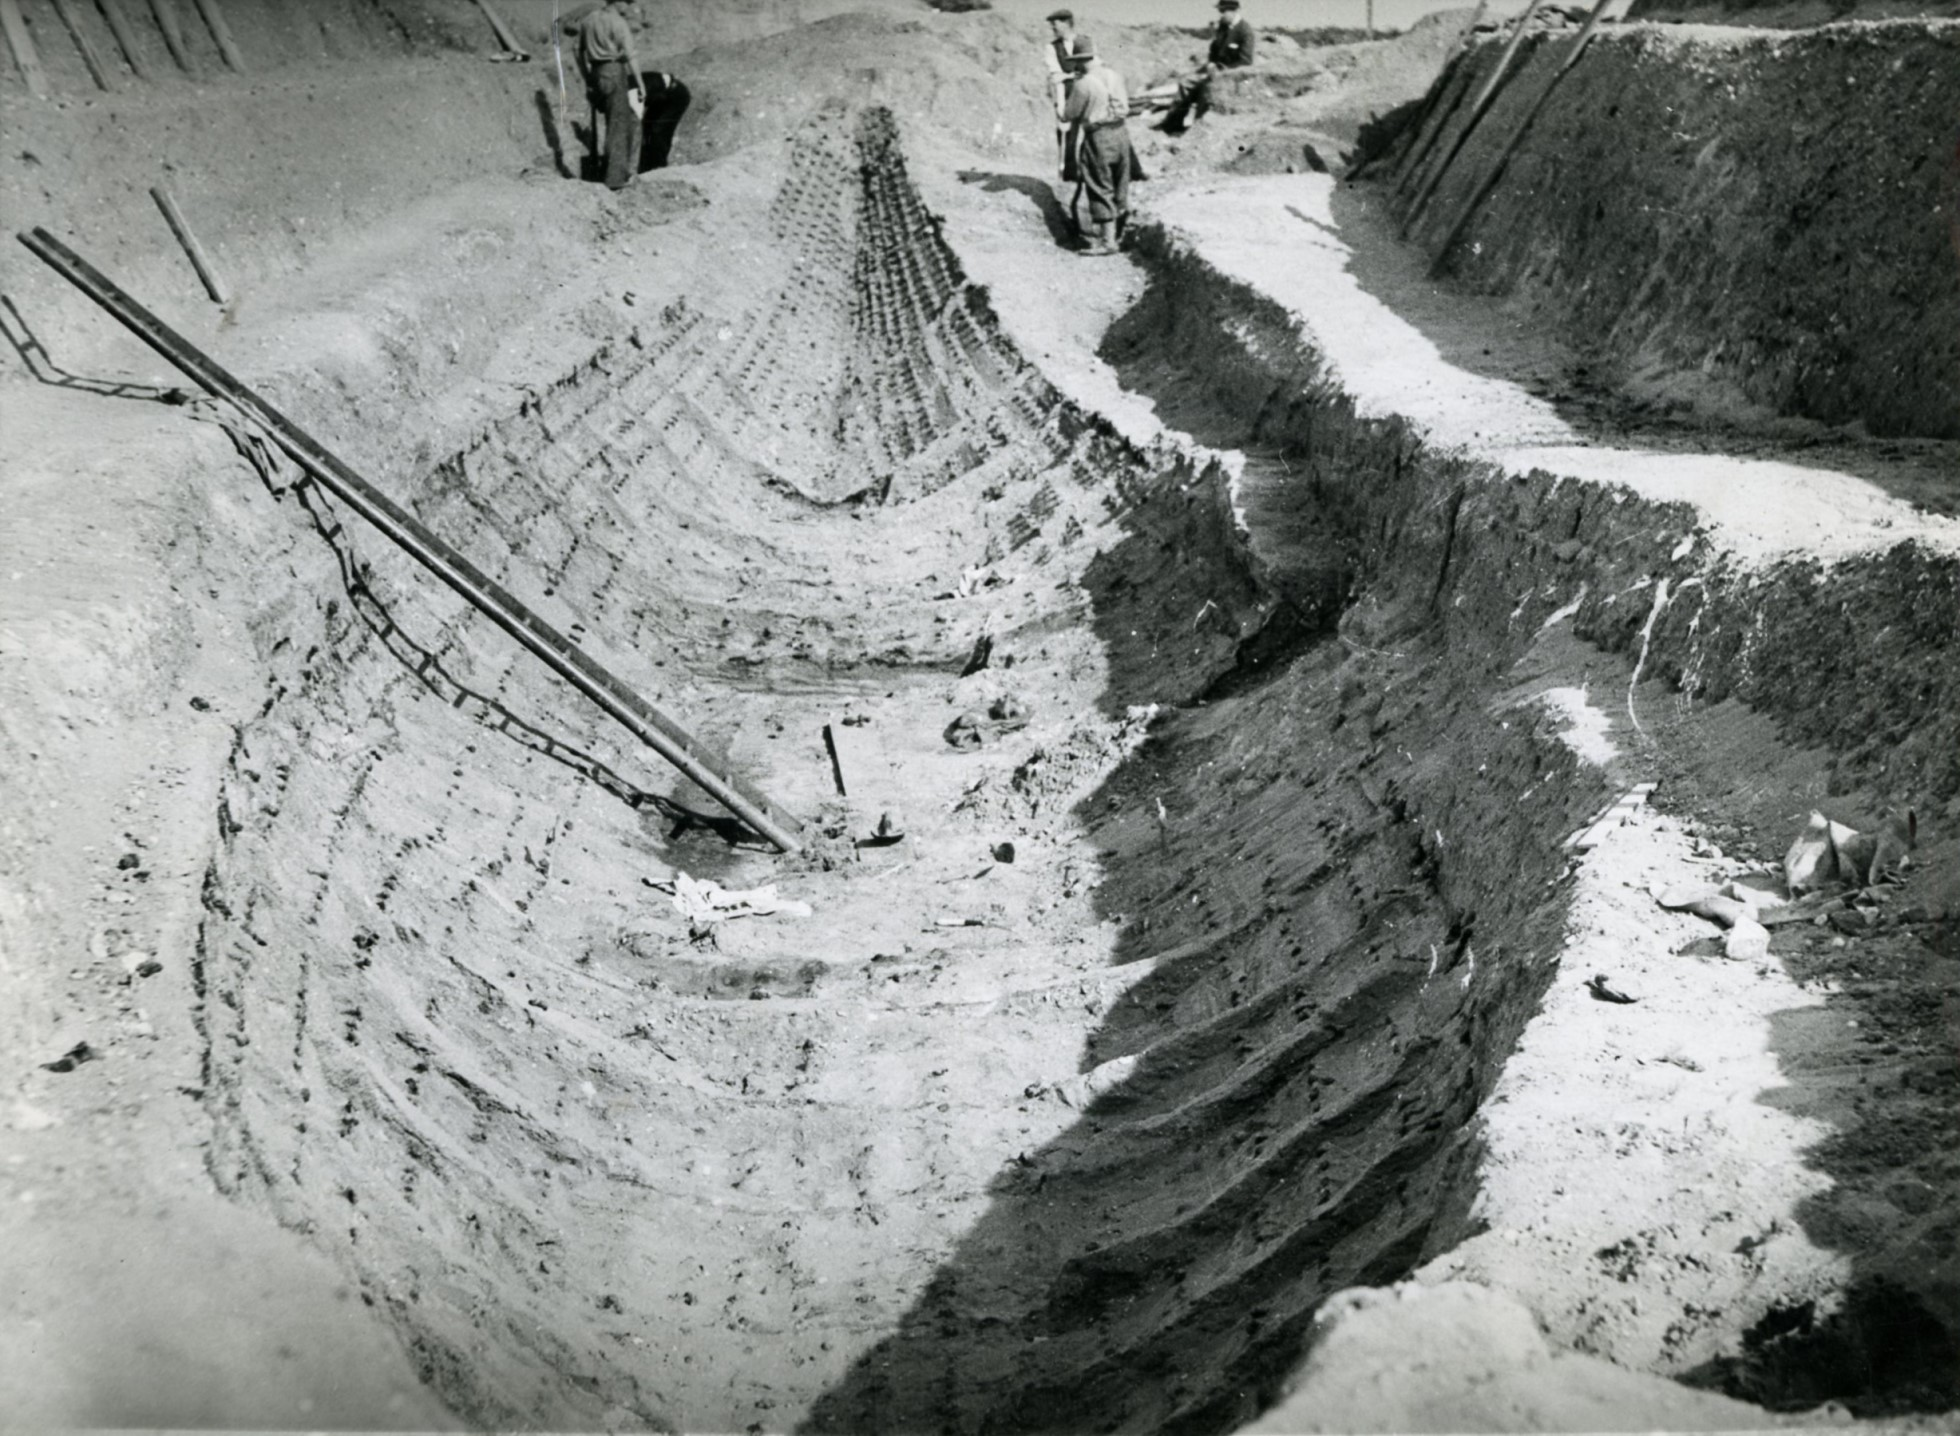 Imprint of a large ship being excavated. A ladder is on the right providing access down into the ship trench. A bank can be seen on the right side.